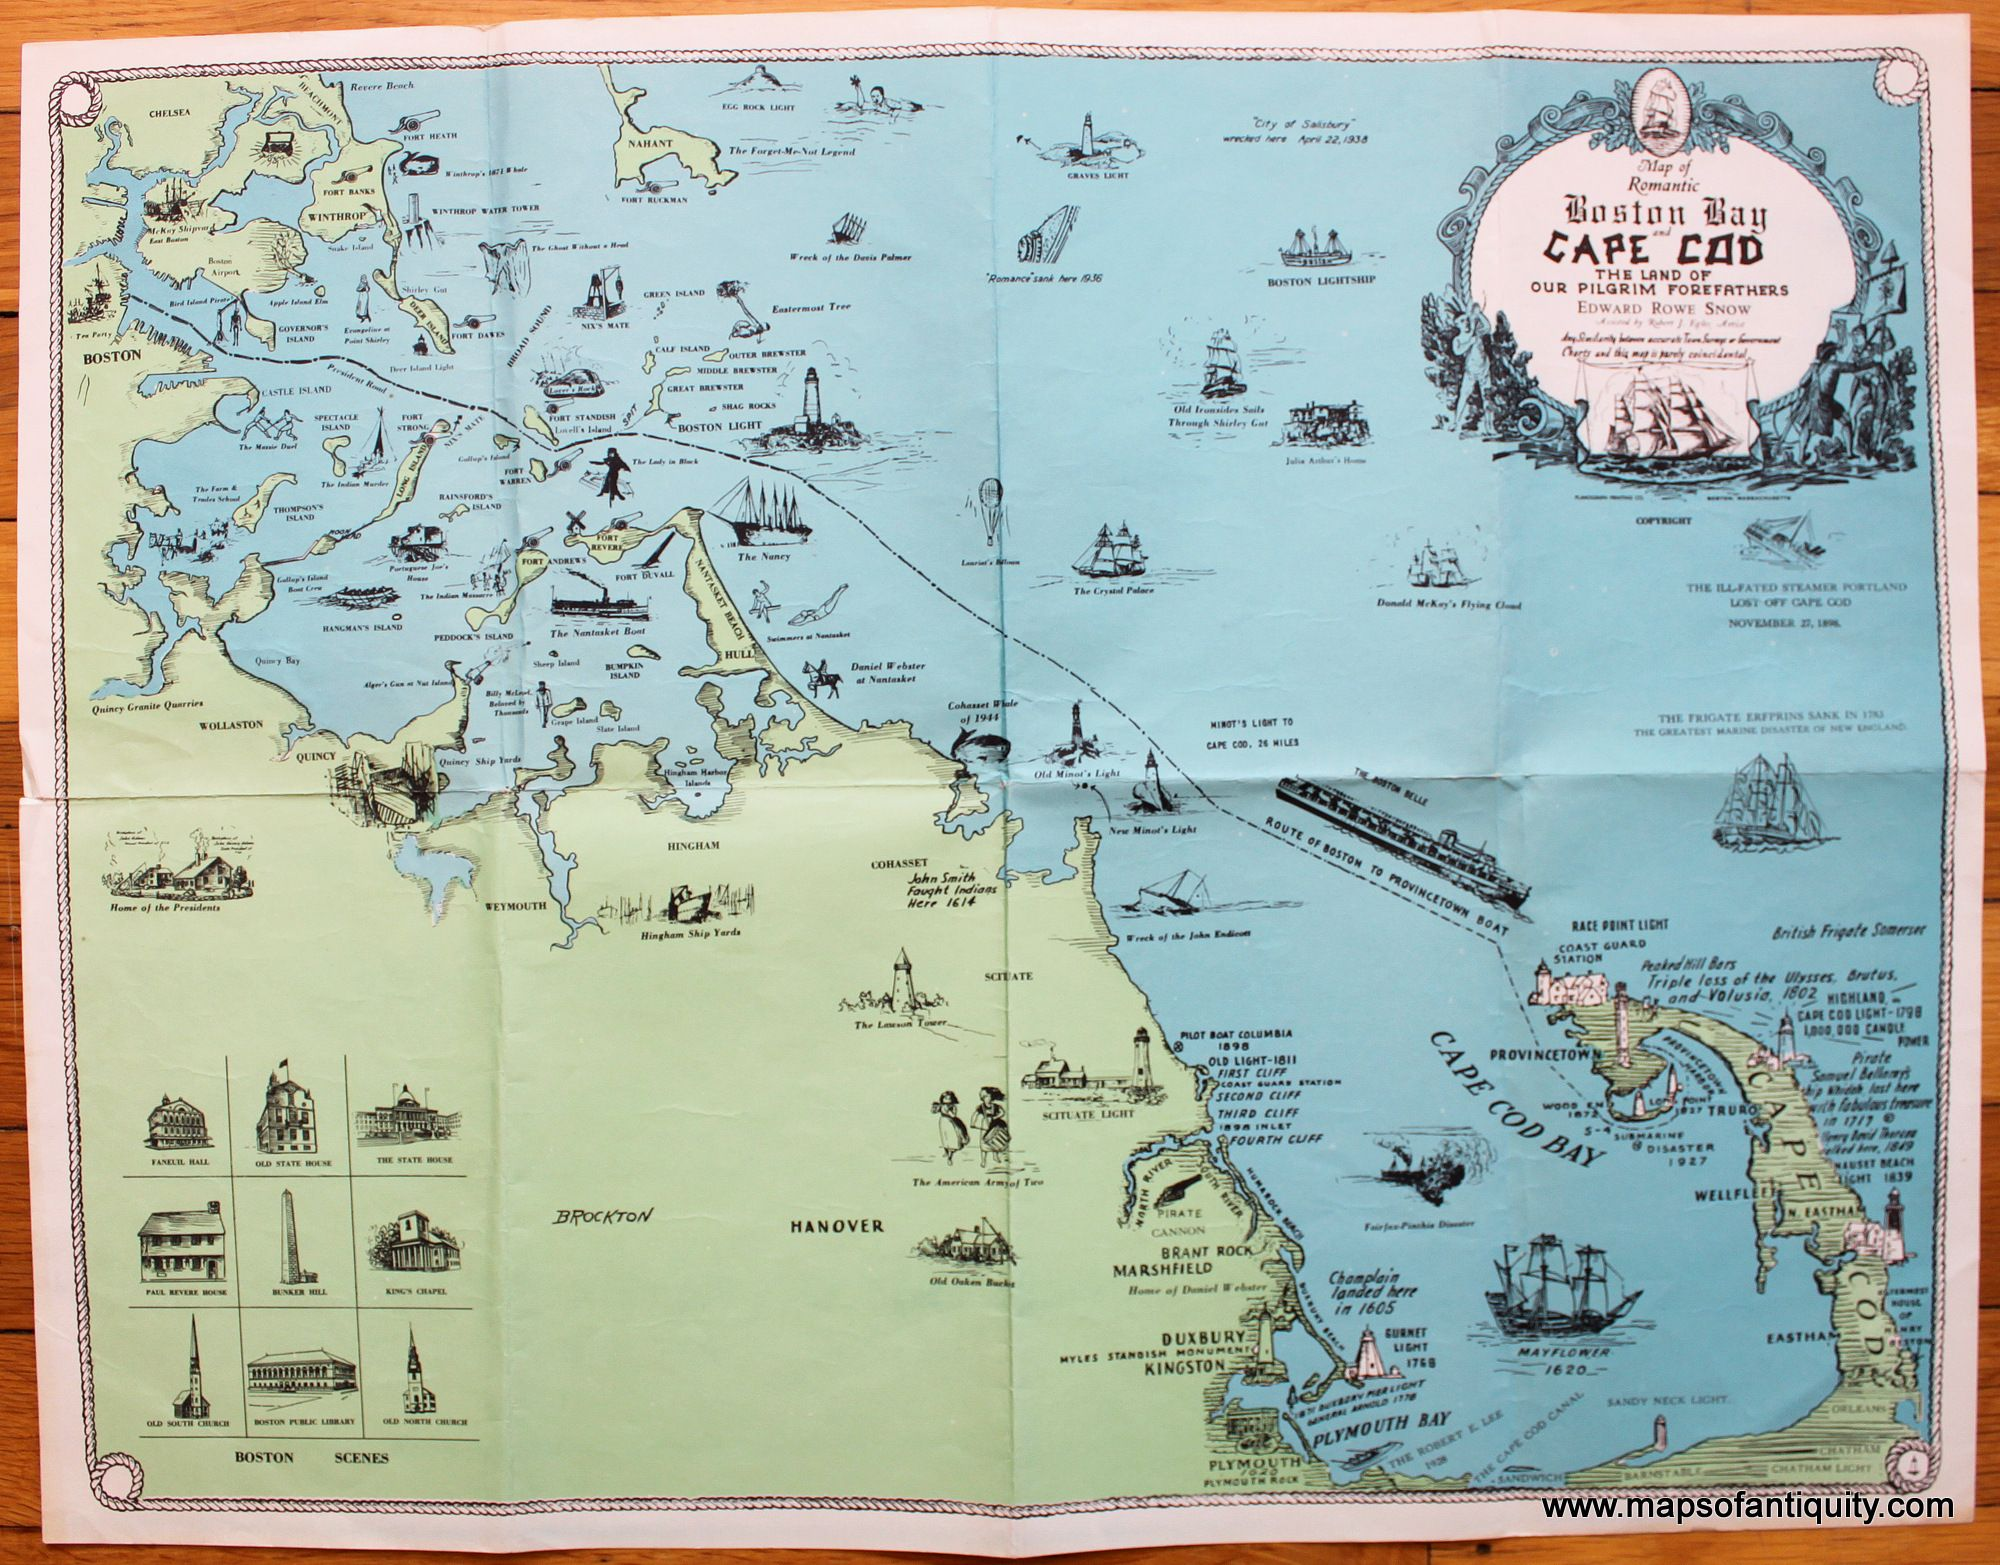 boston and cape cod map Map Of Romantic Boston Bay And Cape Cod The Land Of Our Pilgrim boston and cape cod map